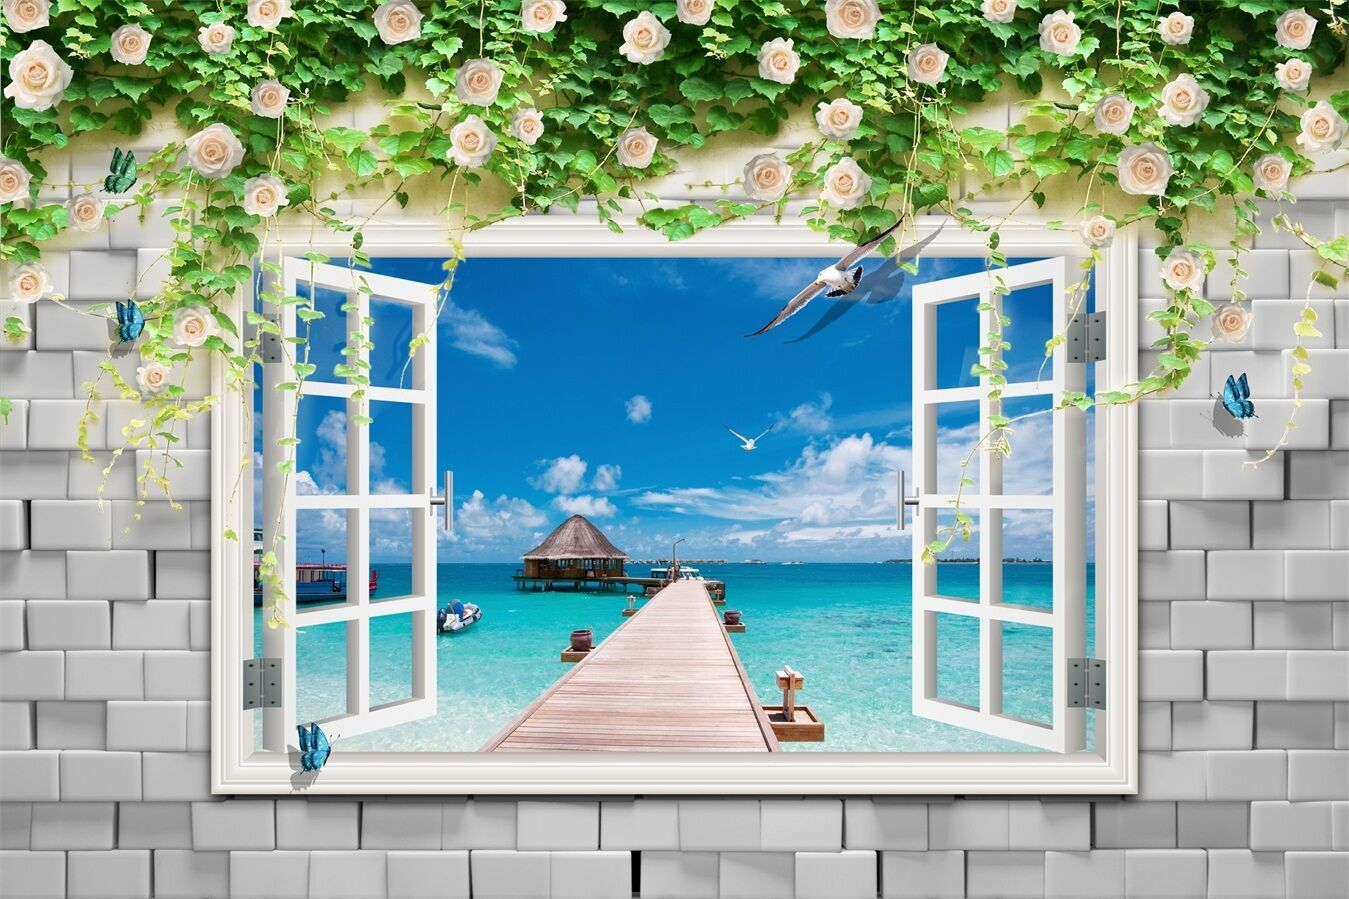 3D Sea, bridge bridge bridge 678 Wall Paper Print Wall Decal Deco Indoor Wall Murals 81f0ee